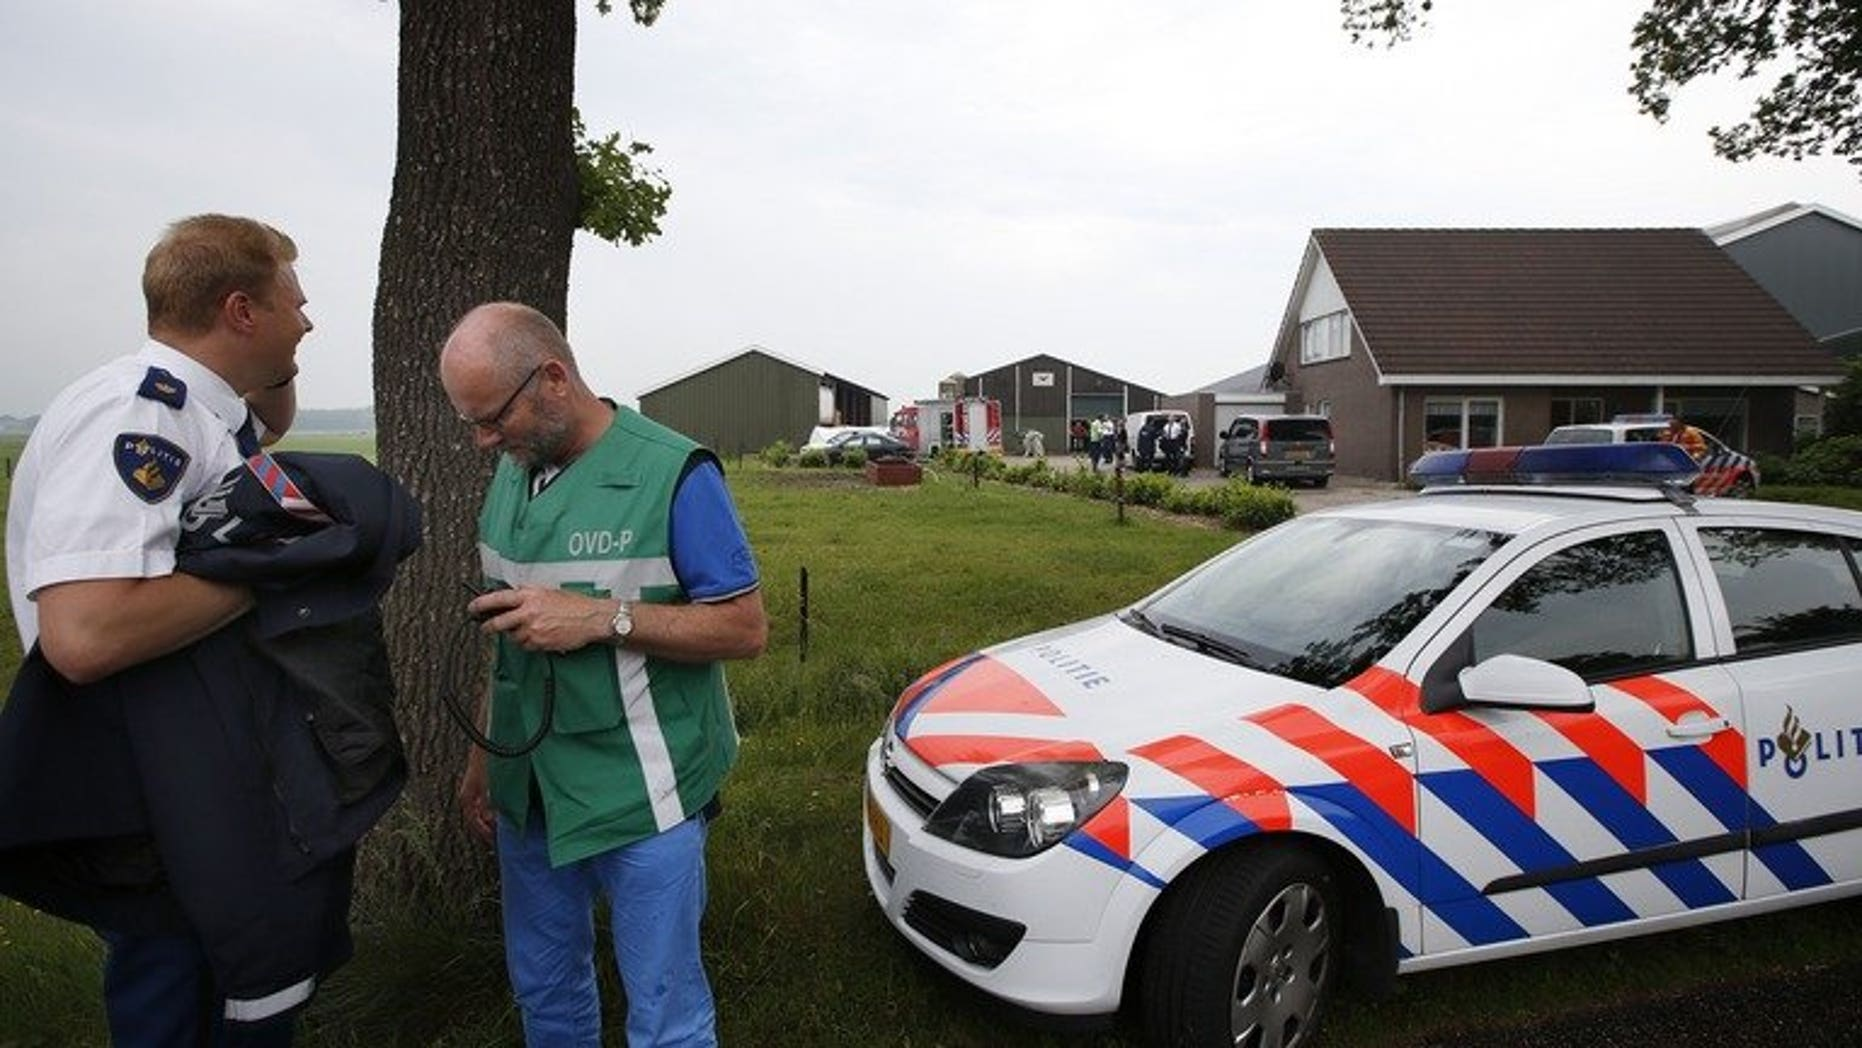 Policemen and rescue workers stand in front of a farm in Makkinga in northern Netherlands, where three men were killed and on man injured after an accident in a manure silo on June 19, 2013. Three farmworkers died after falling into a manure silo in the northern Netherlands, with a survivor flown to hospital in a critical condition